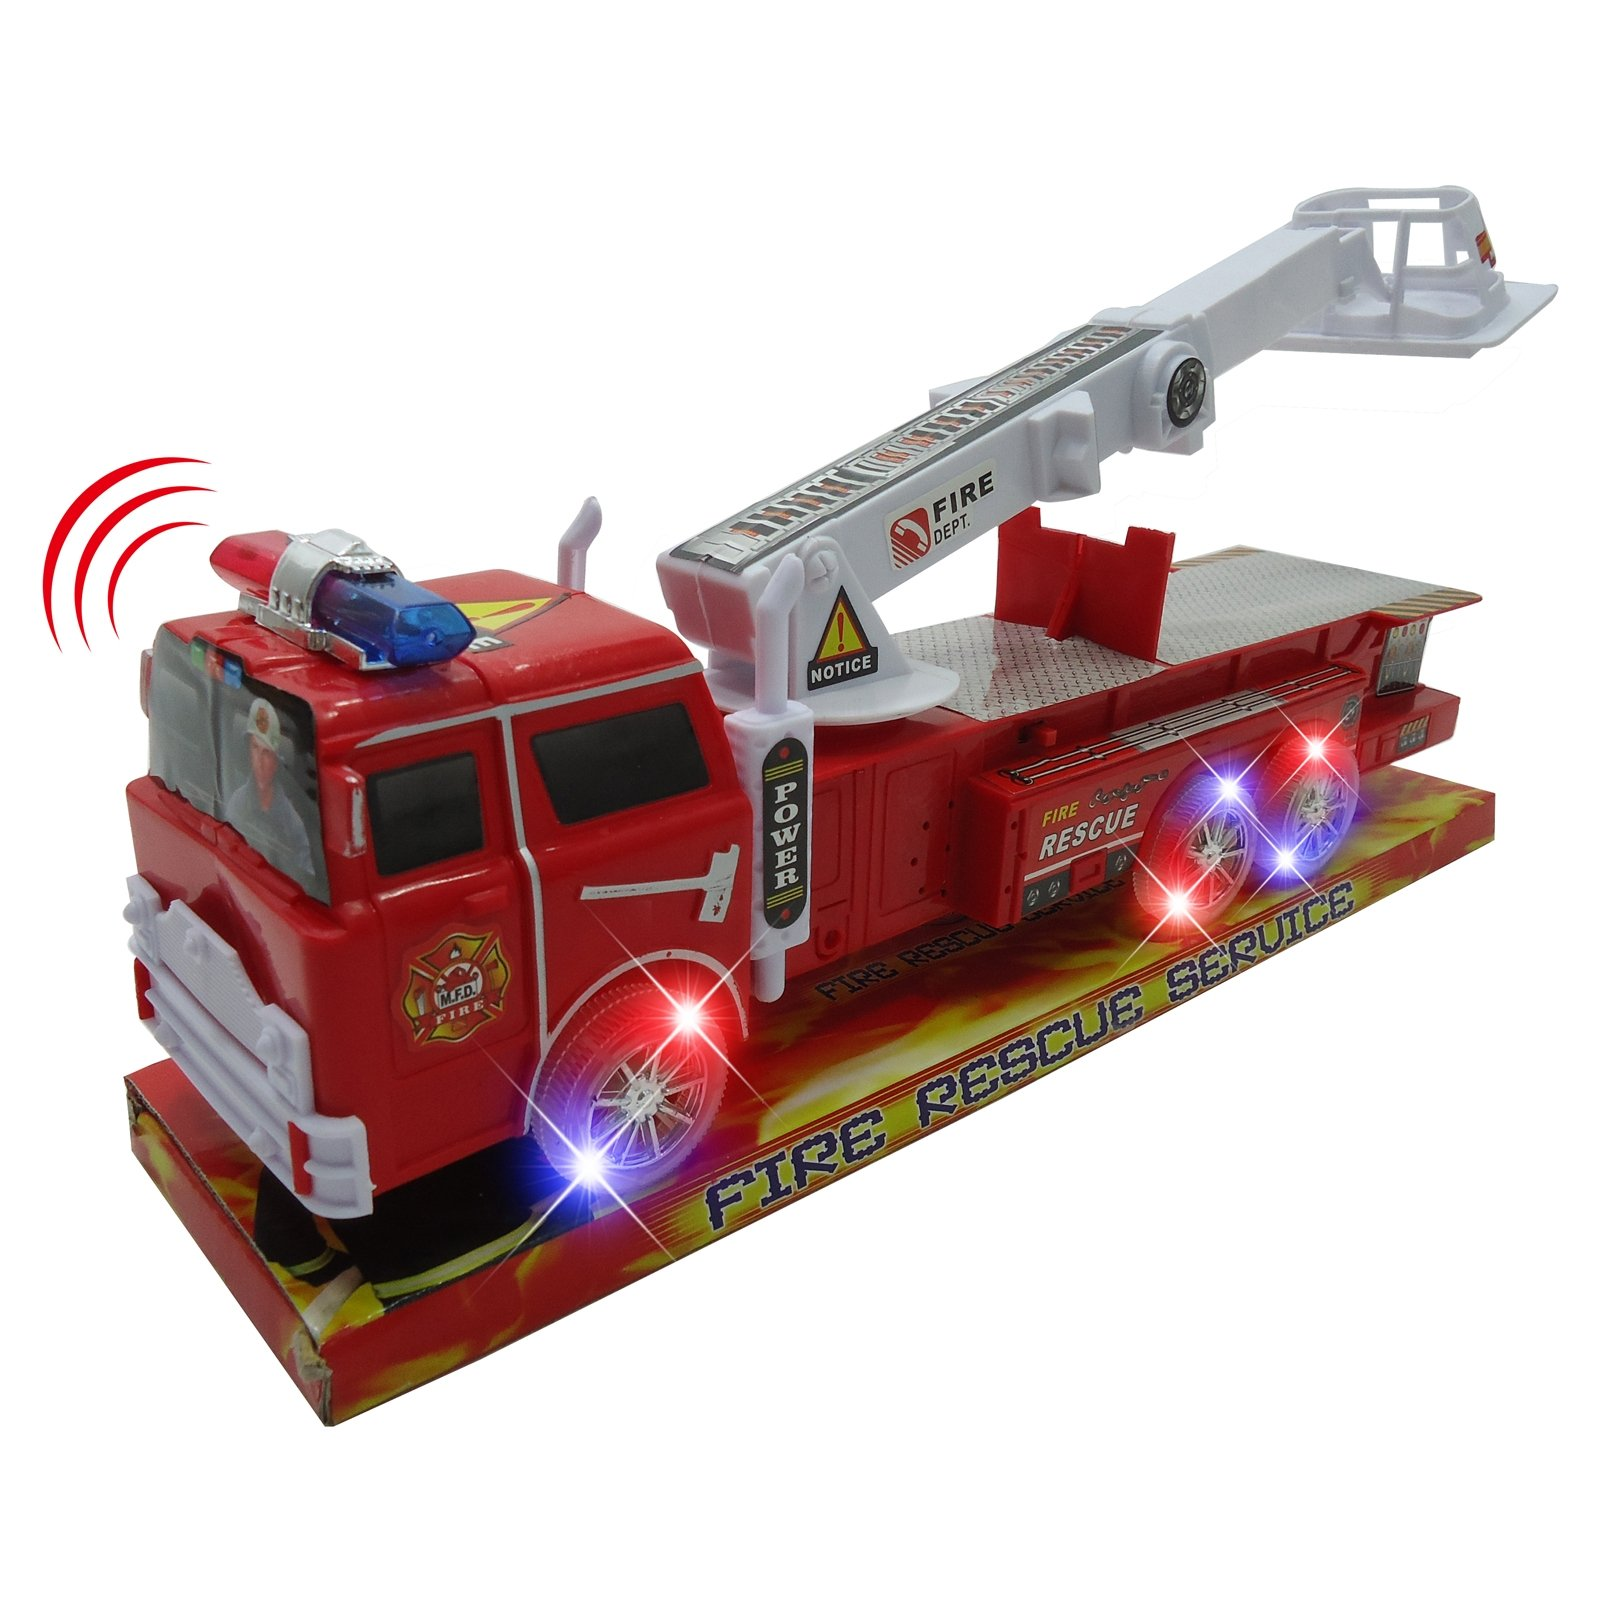 Light Up Fire Engine Rescue Truck with Firefighter Utility Bucket by KidFun Products